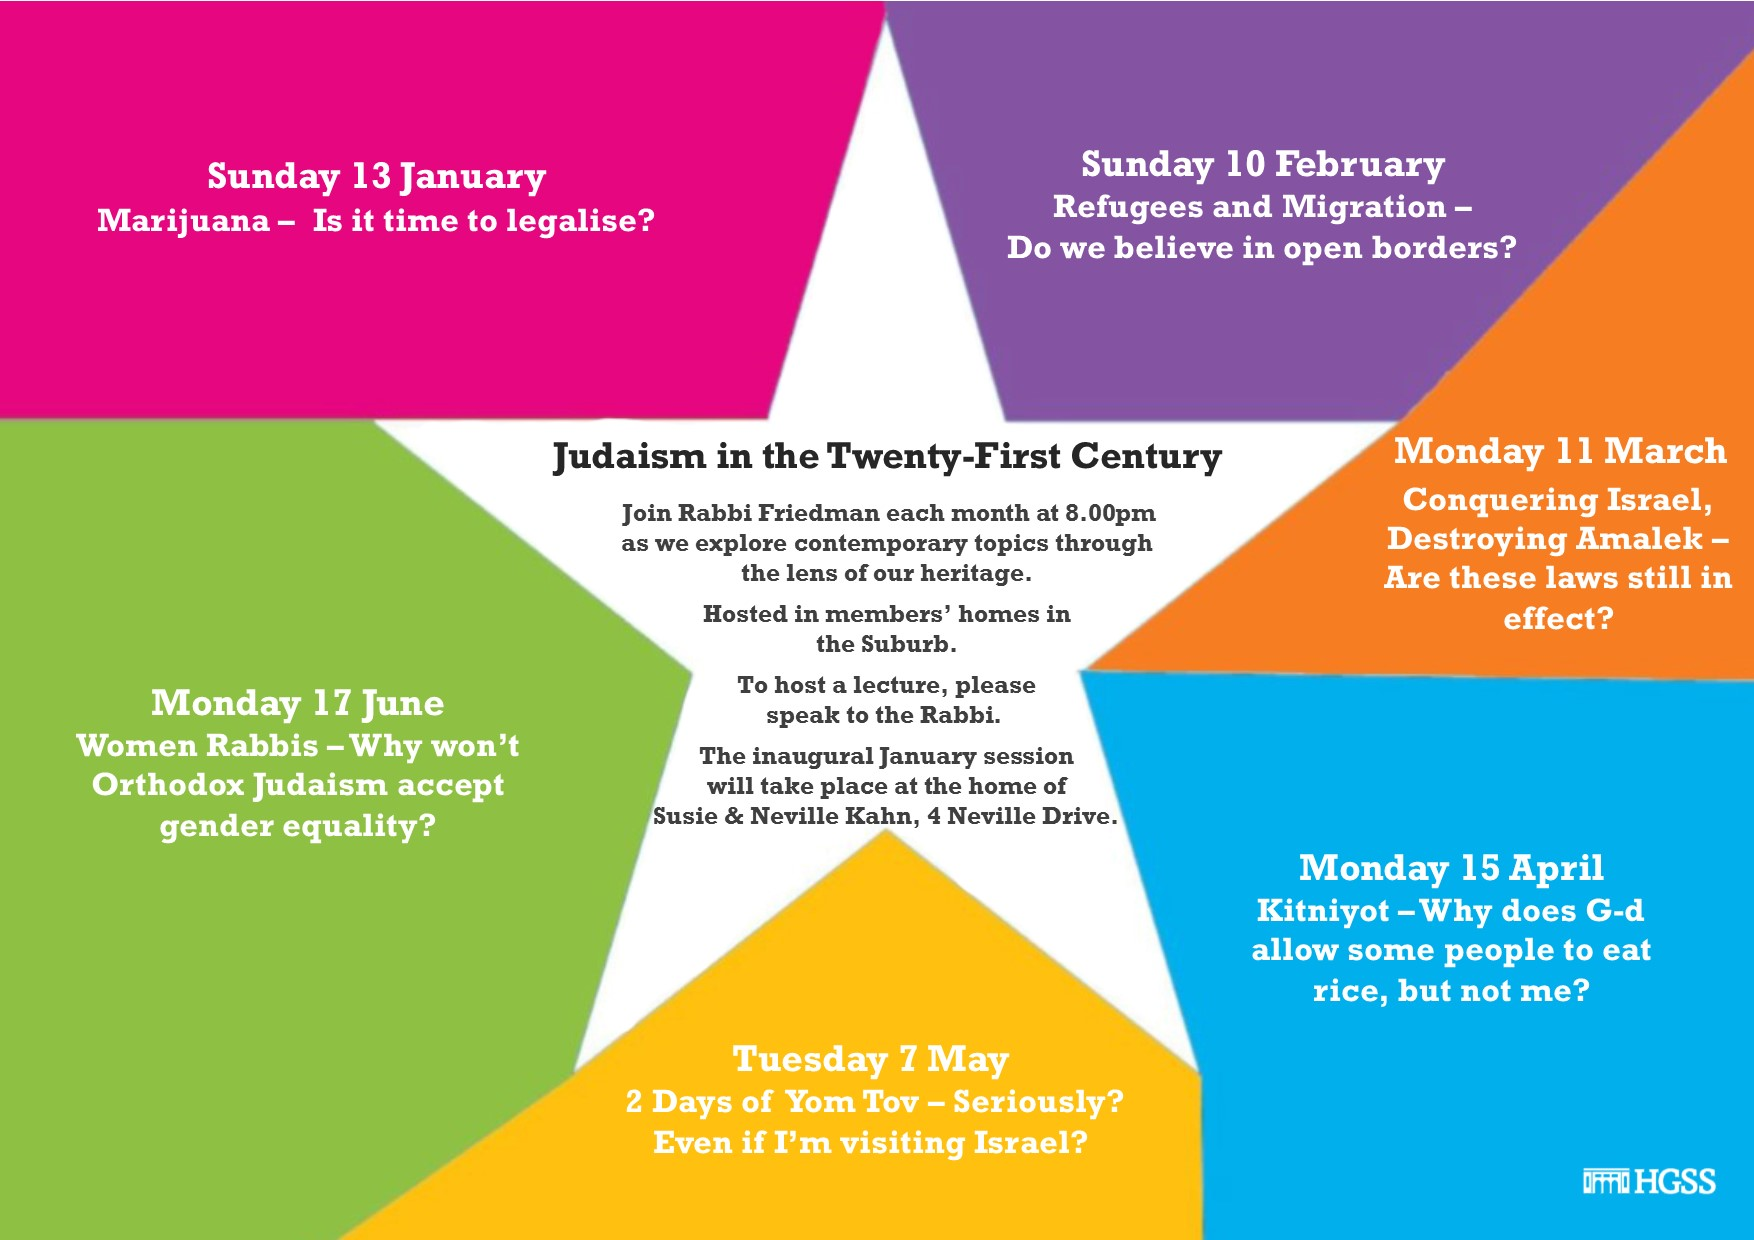 Judaism in the Twenty-First Century